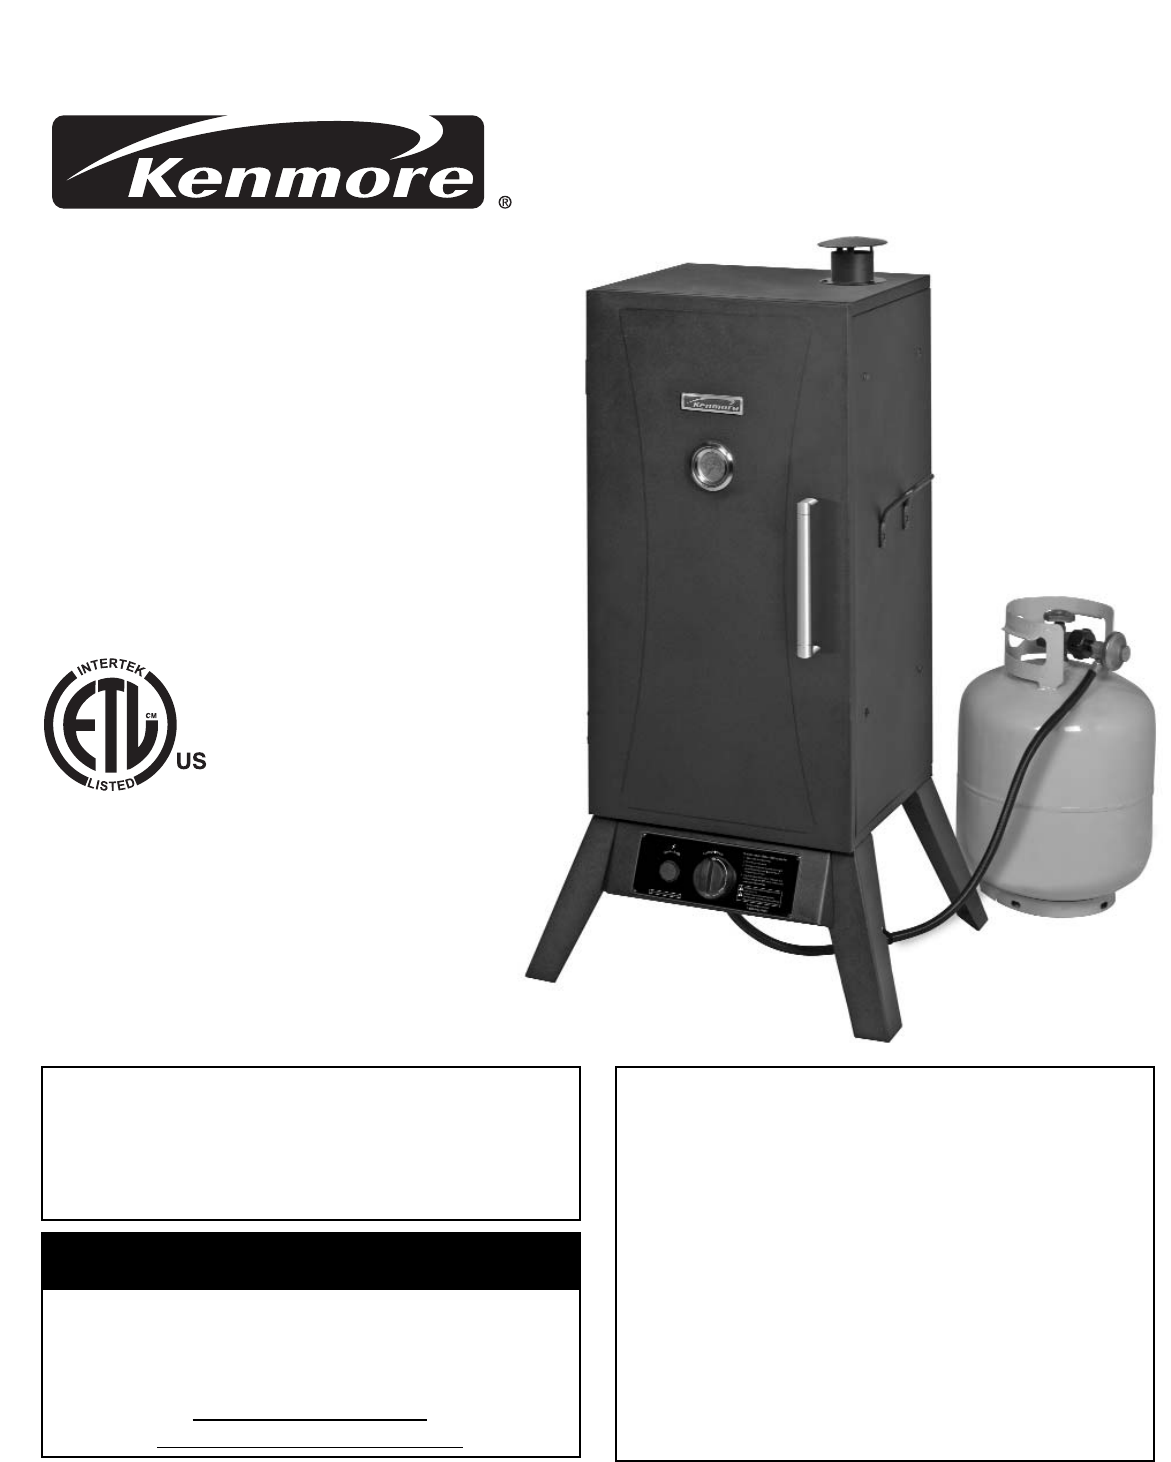 kenmore smoker 125 15884801 user guide manualsonline com rh outdoorcooking manualsonline com Kenmore Smoker Parts Brinkmann Smoker Parts